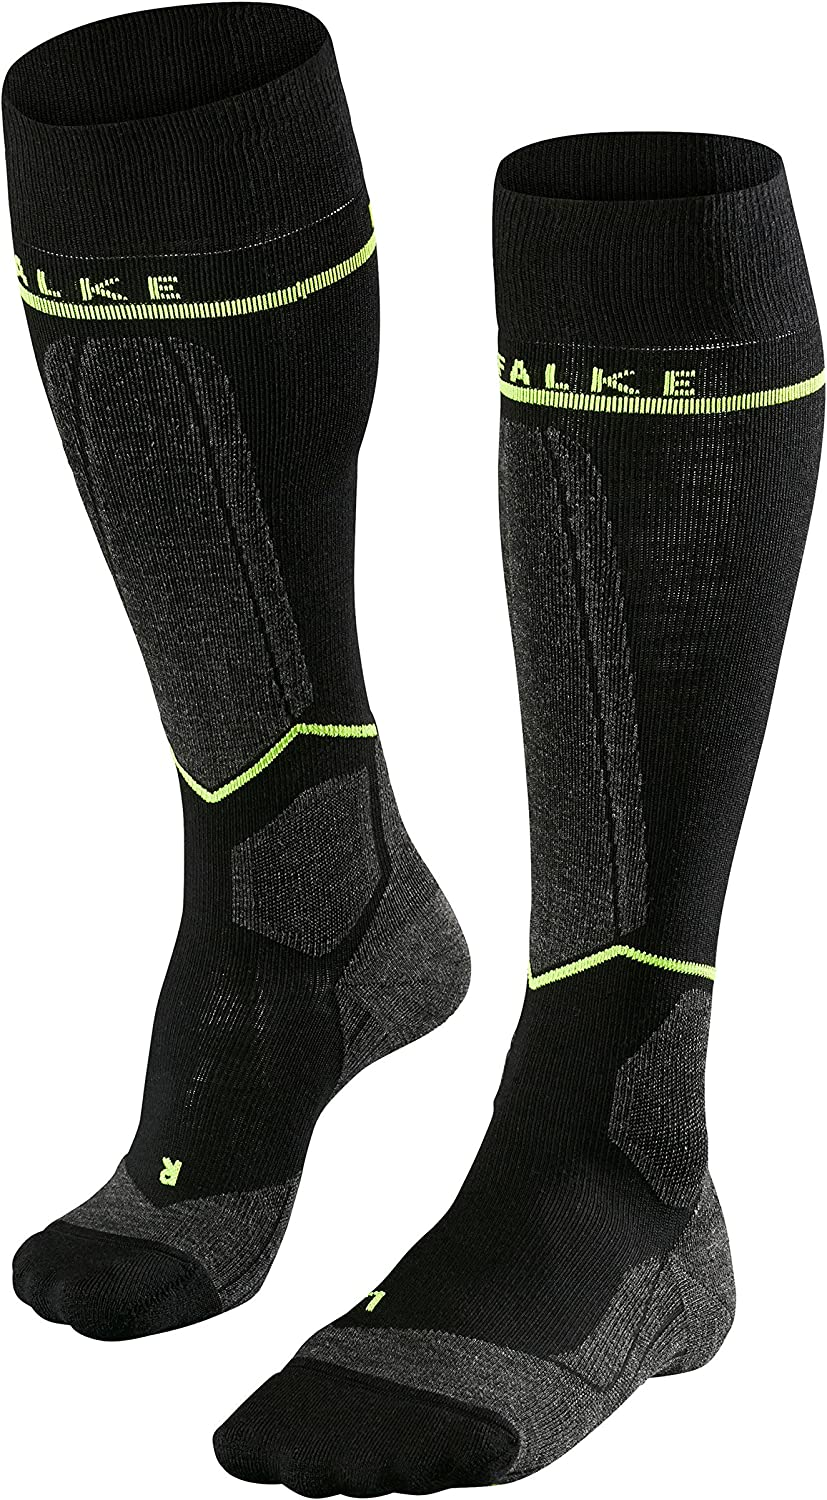 Warm FALKE Men SK Energizing Wool Compression Ski Socks sweat wicking UK sizes 5.5-11 In Black fast drying 1 Pair Blue or Red Merino Wool Blend facilitates recovery breathable EU 39-46